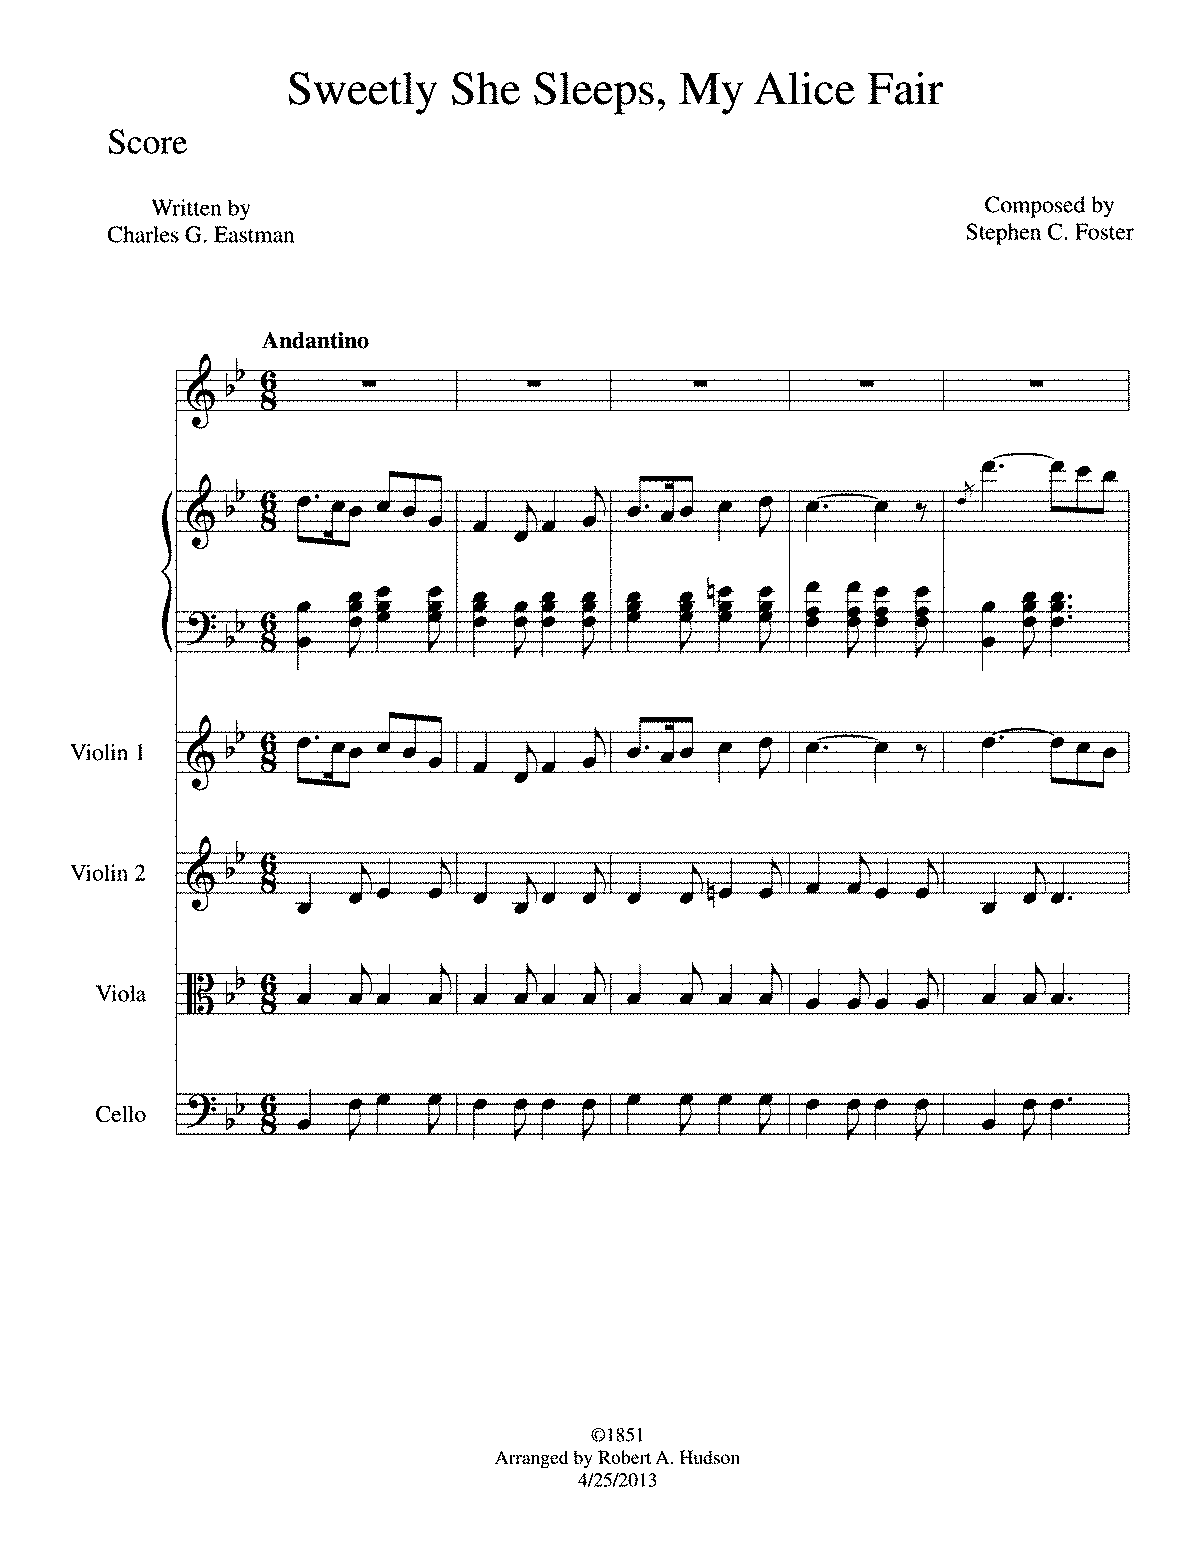 PMLP391197-Sweetly She Sleeps My Alice Fair Conductors Score.pdf